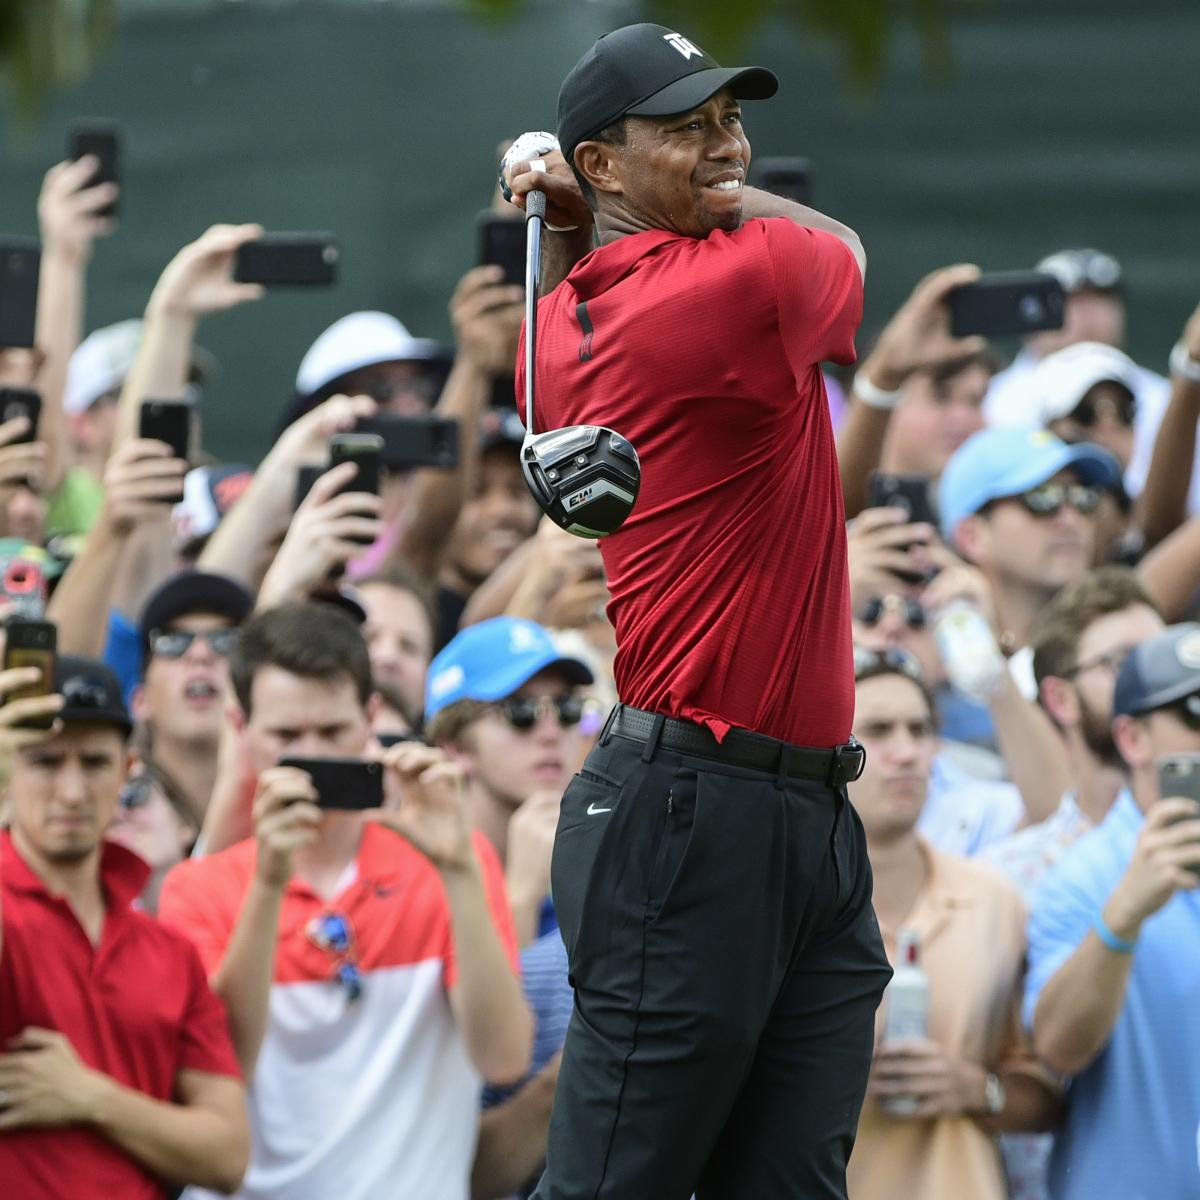 Tour Championship 2018: Tiger Woods Earns 1st Win Since '13, Wins by 2 Strokes